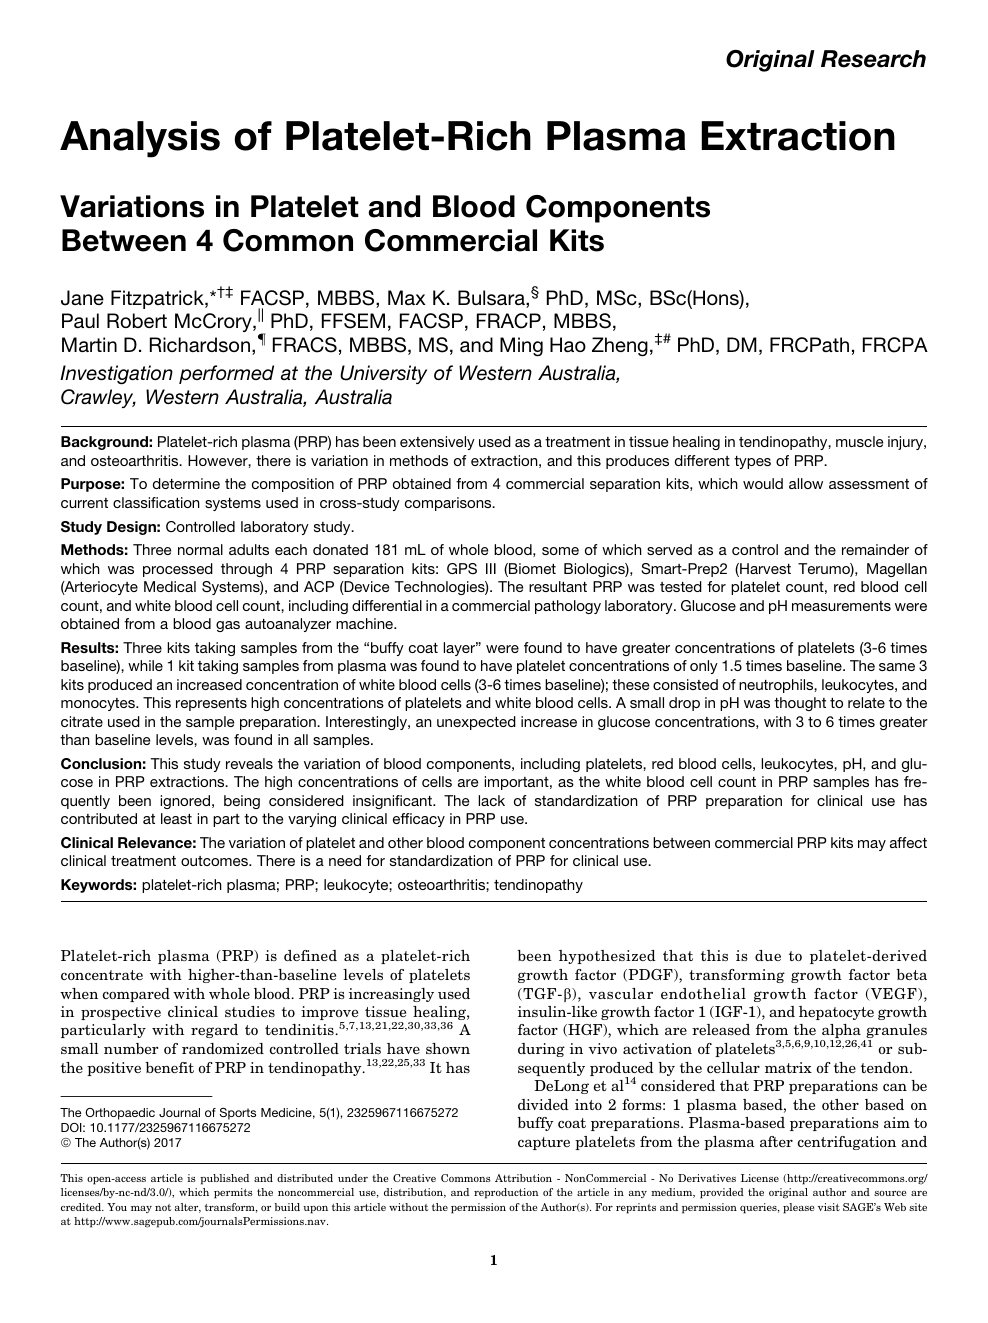 Analysis of Platelet-Rich Plasma Extraction – topic of research